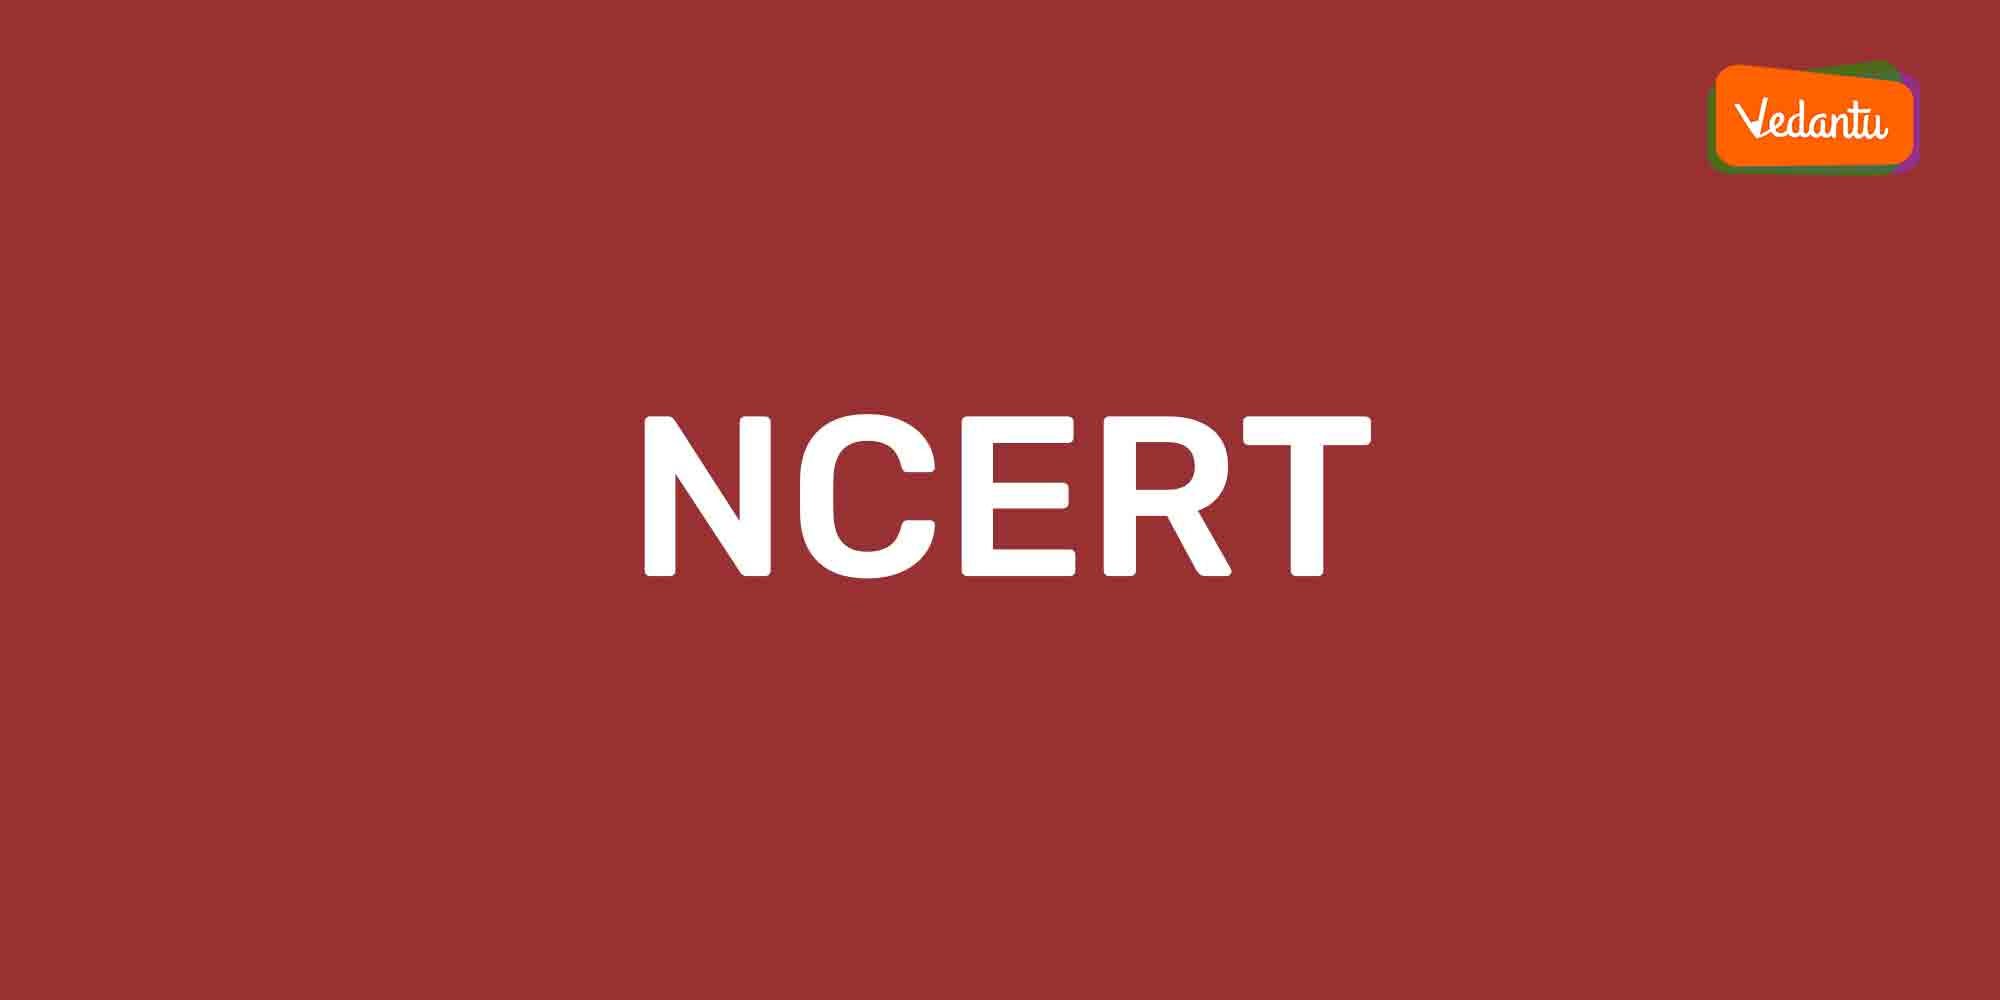 Know if NCERT is Sufficient for Class 10 Boards